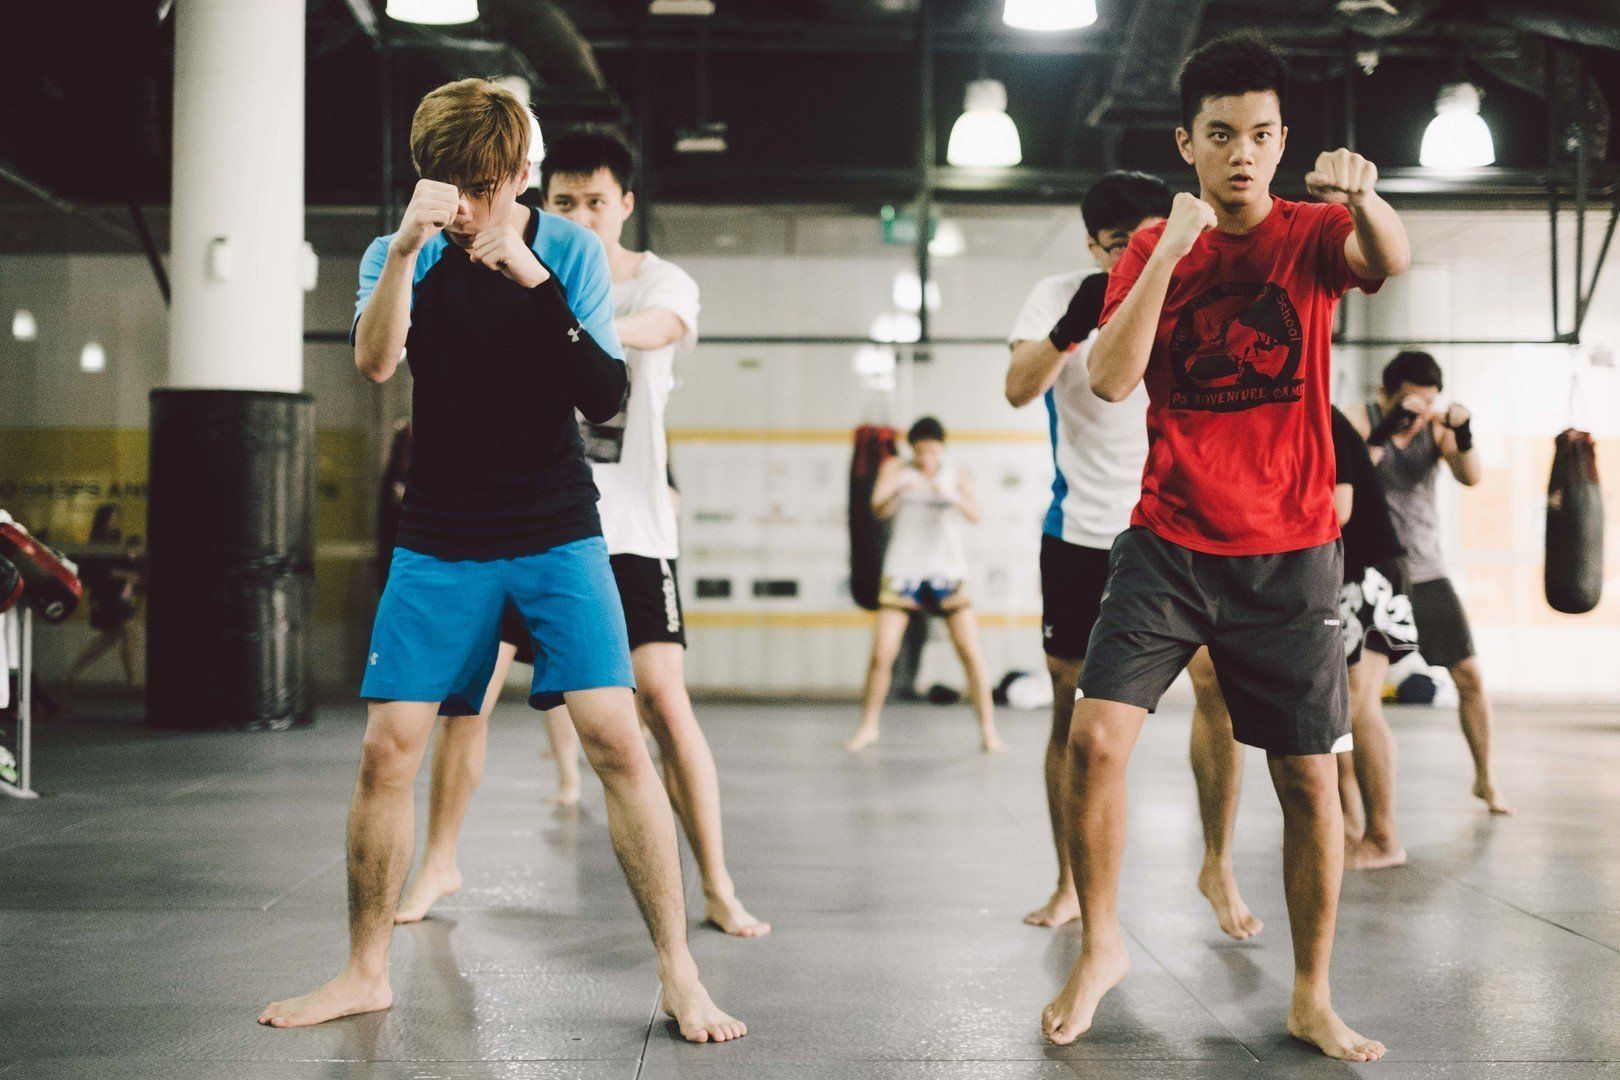 Shadowboxing improves your balance and coordination.